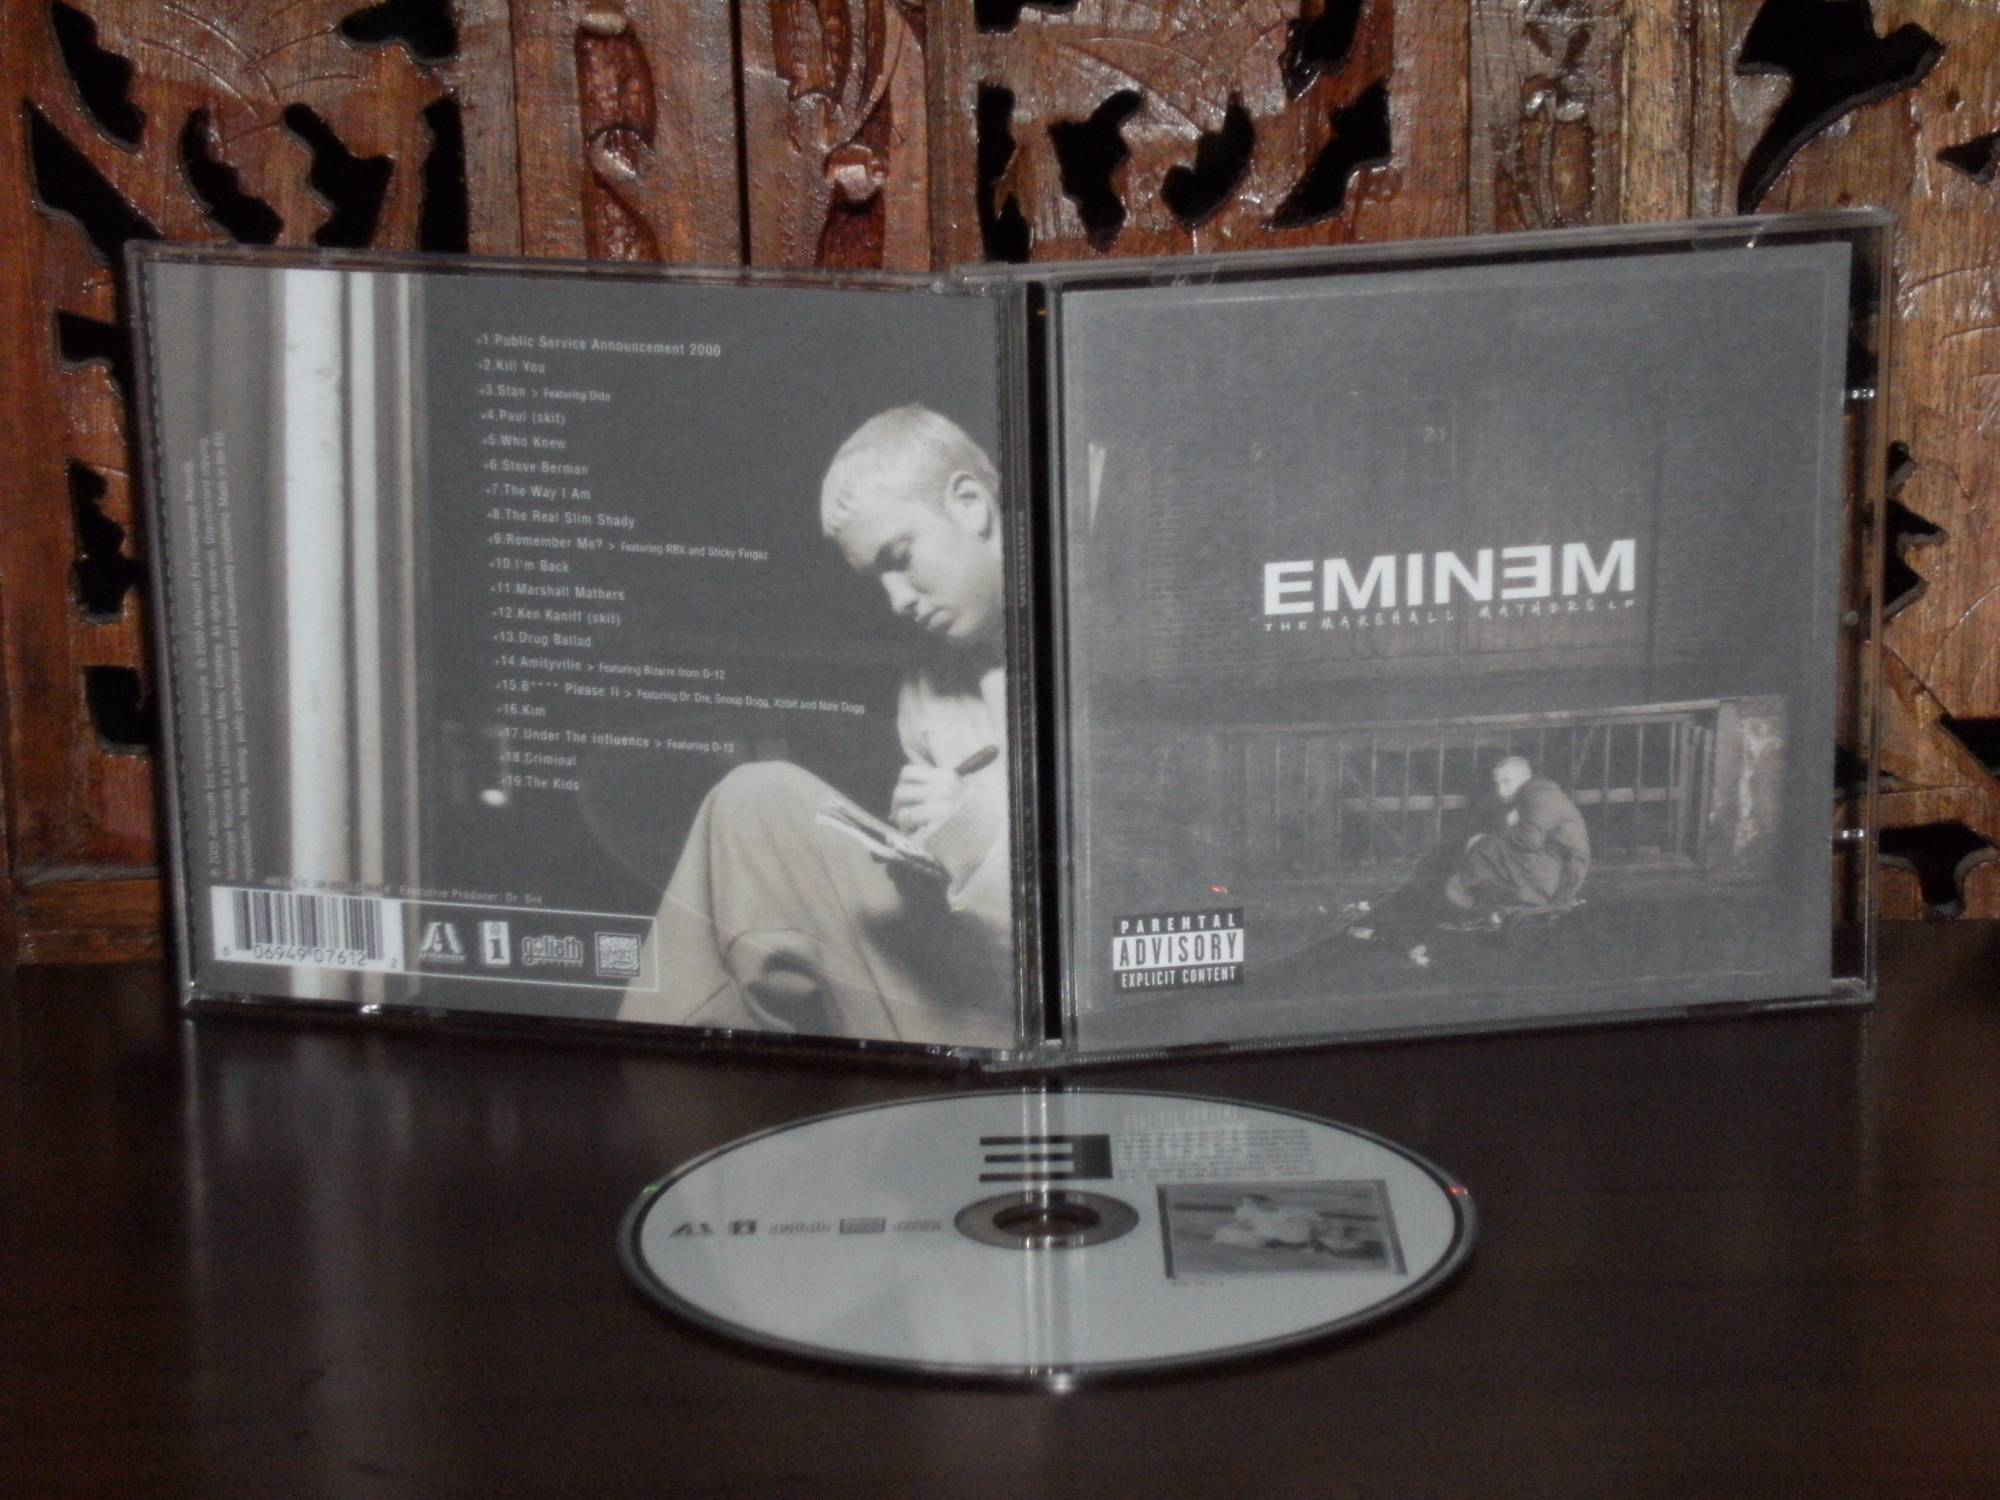 Eminem : The Marshall Mathers LP (2000) - Centerblog